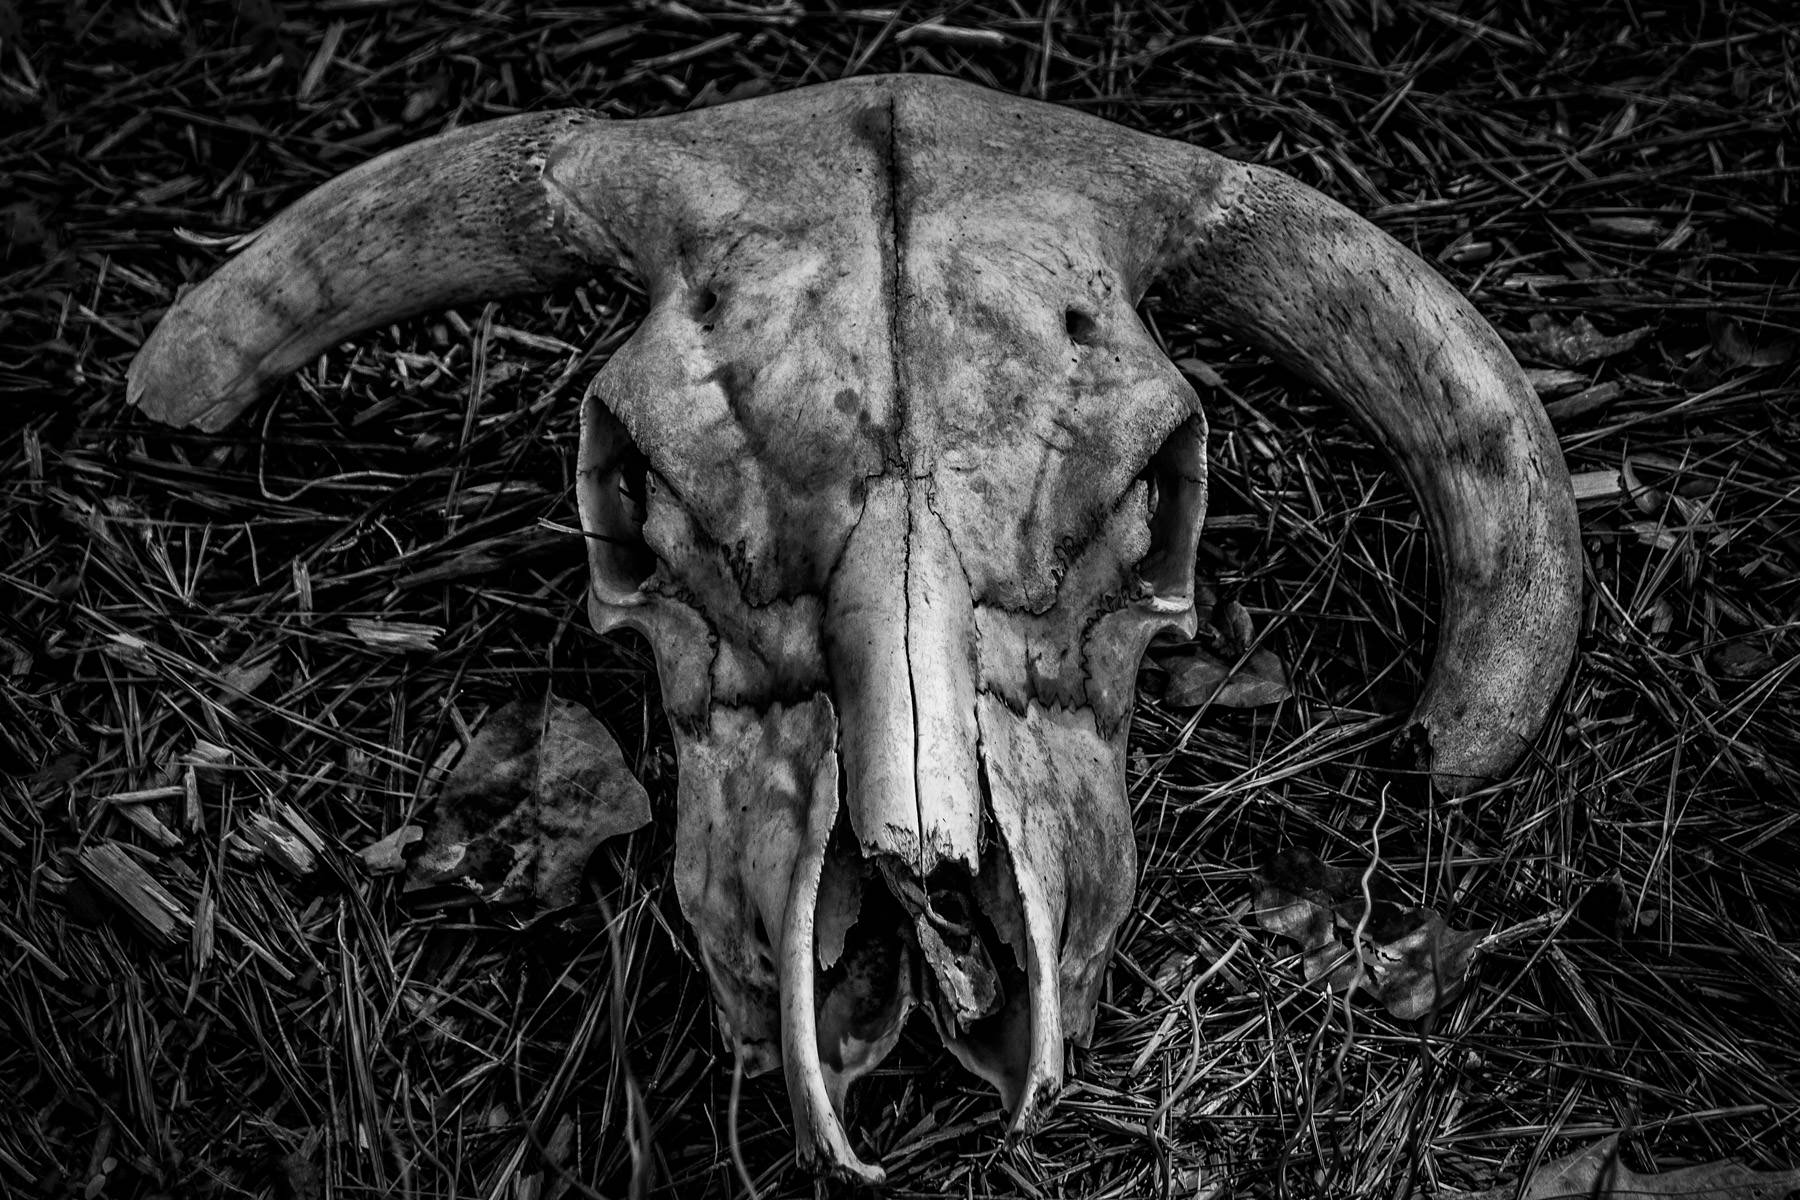 A cow skull found somewhere in East Texas.